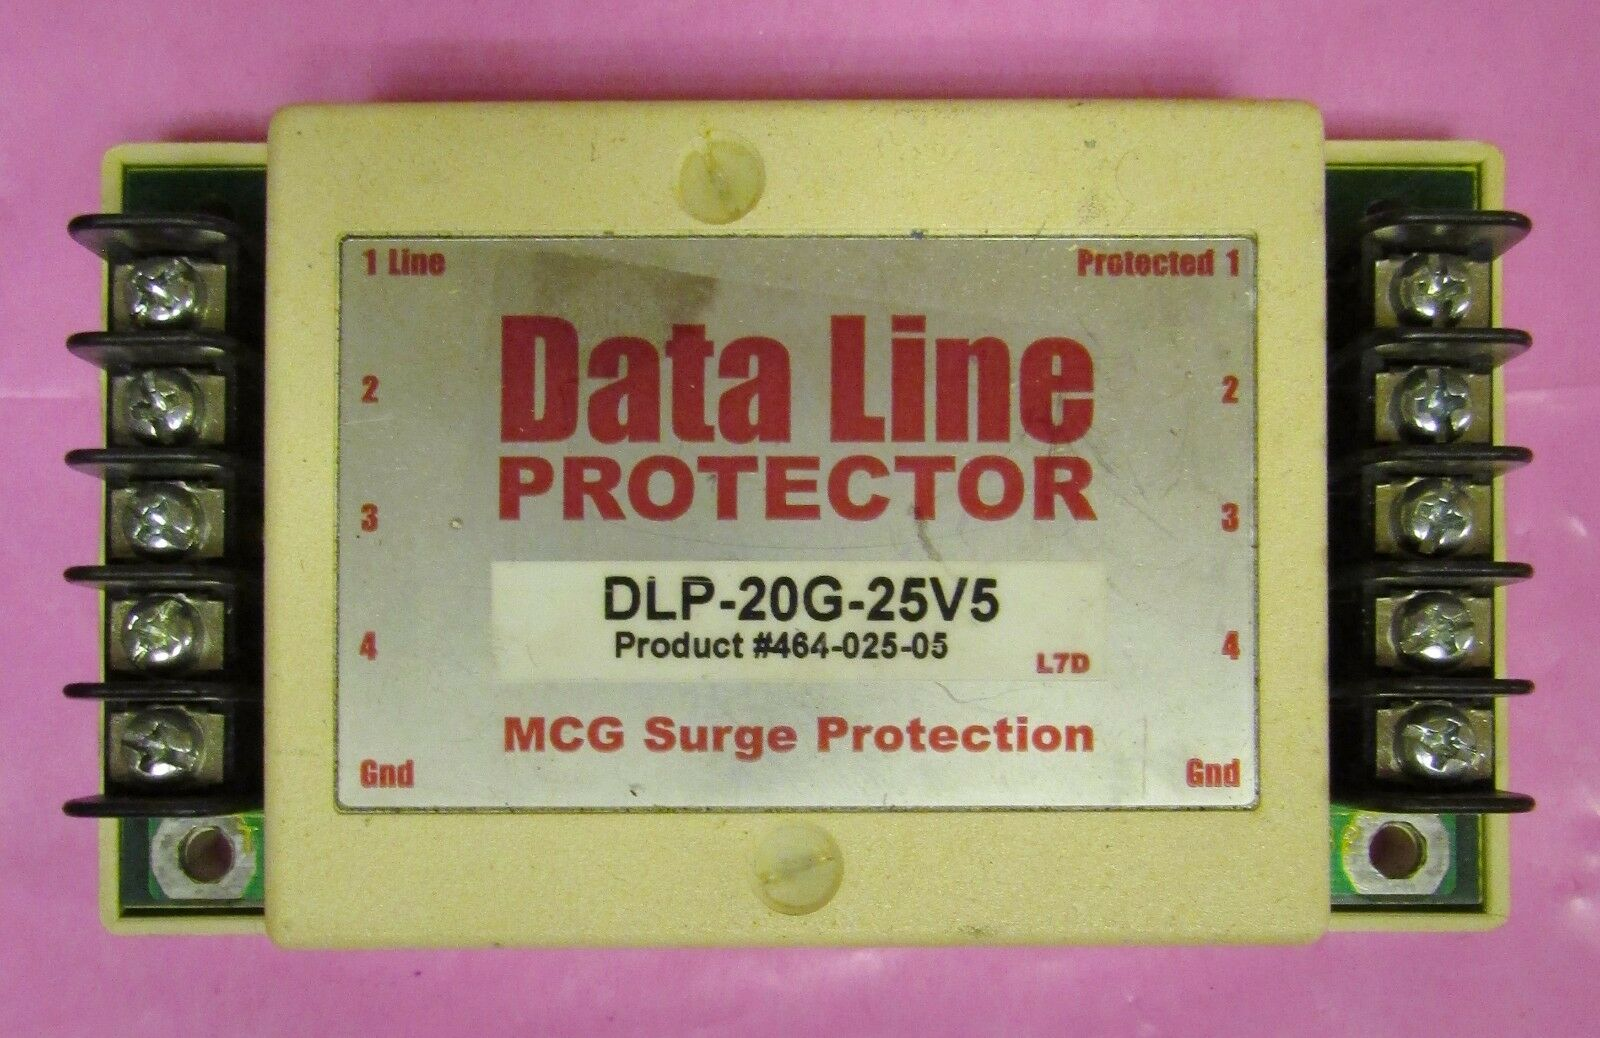 MCG SURGE PredECTION DLP 20G 25V5 Data Line Predector 464 025 05